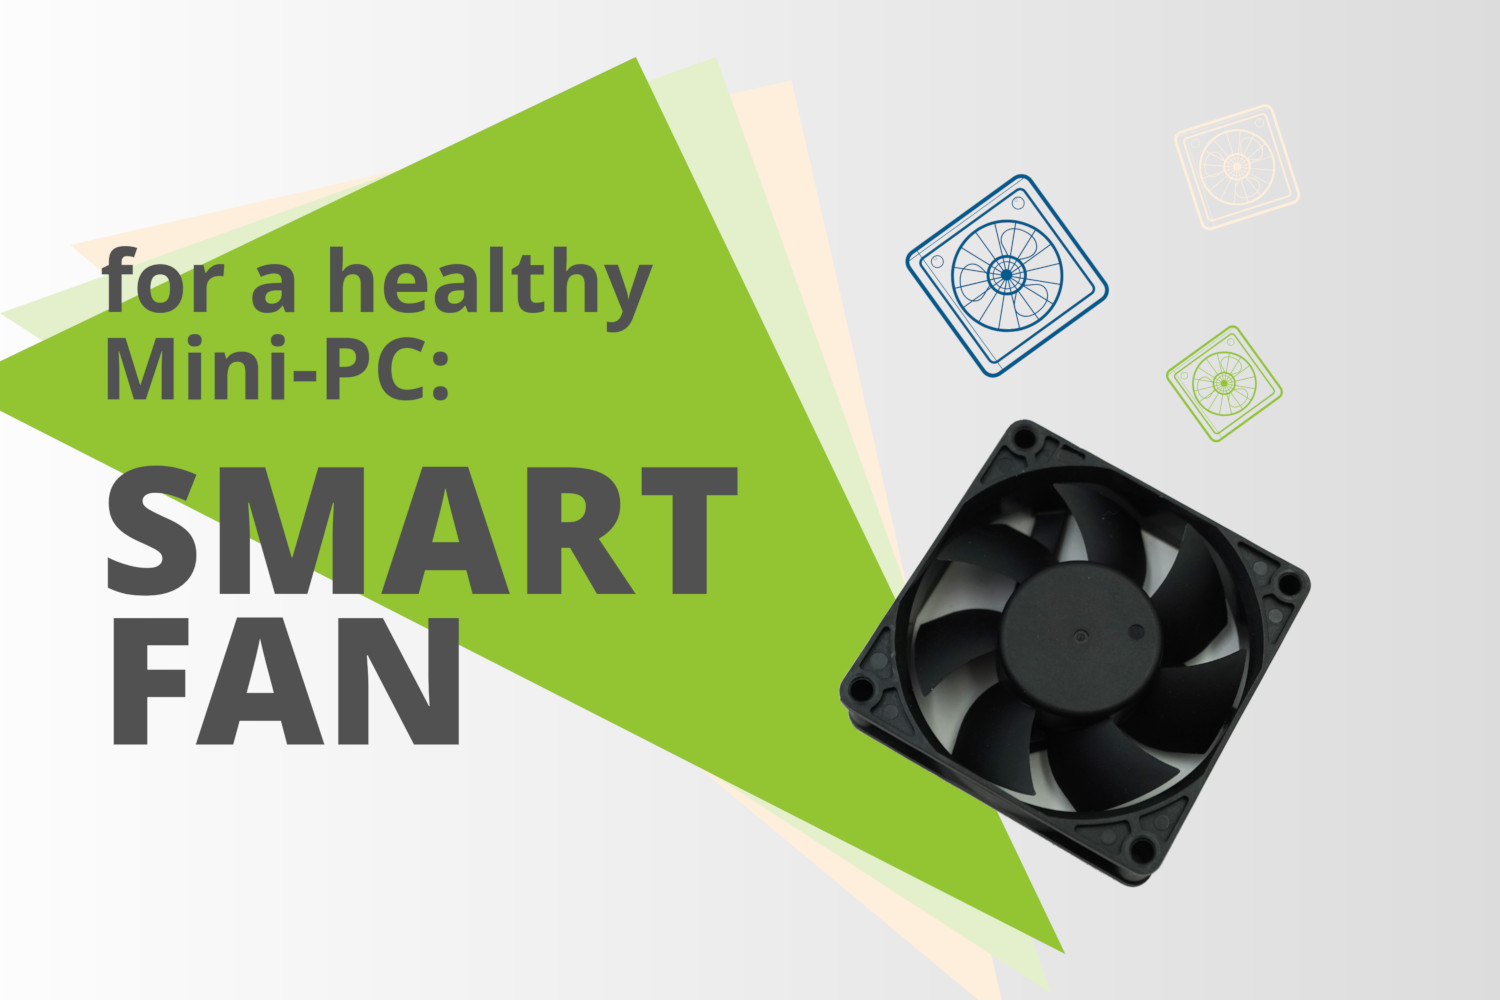 How can my Mini-PC stay healthy? Part 2: SmartFan